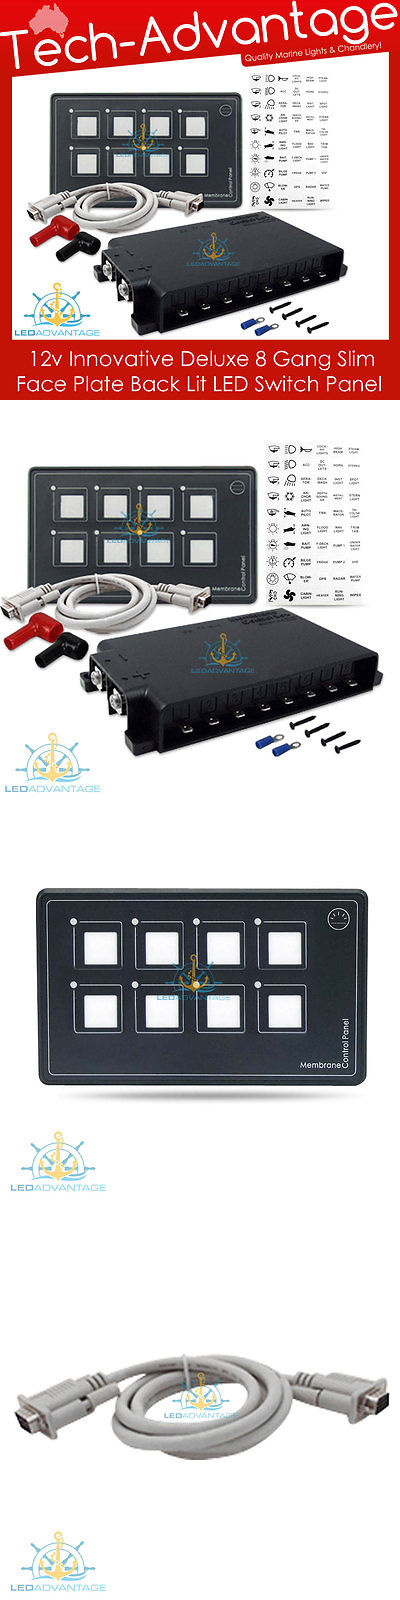 Boat Parts 12v 8 Gang Led Back Lit Membrane Touch Boat Caravan Dashboard Night Switch Panel Buy It Now Only 185 0